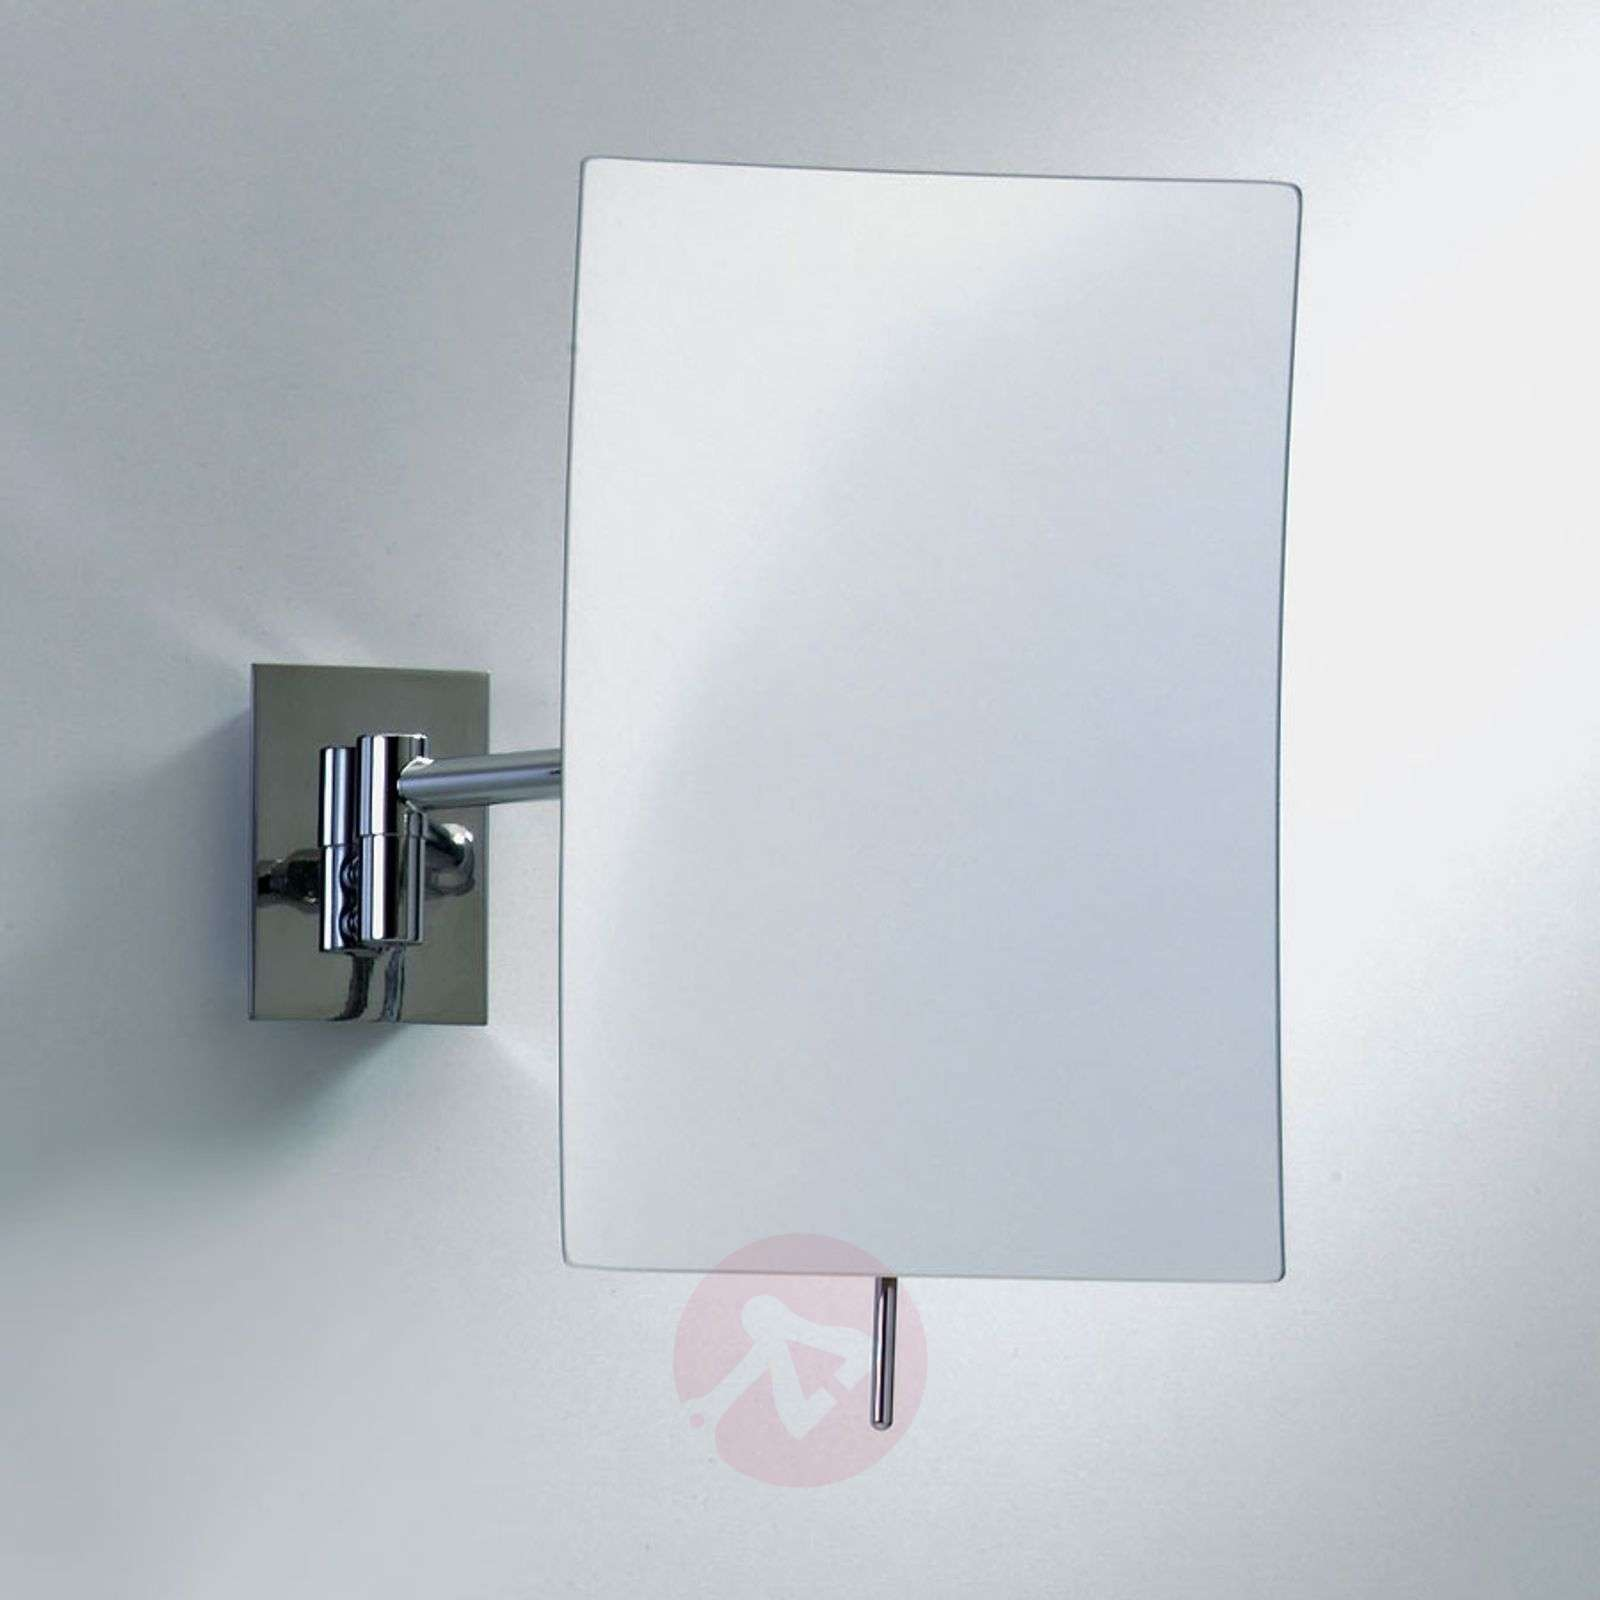 Beau miroir grossissant nook for Beaux miroirs